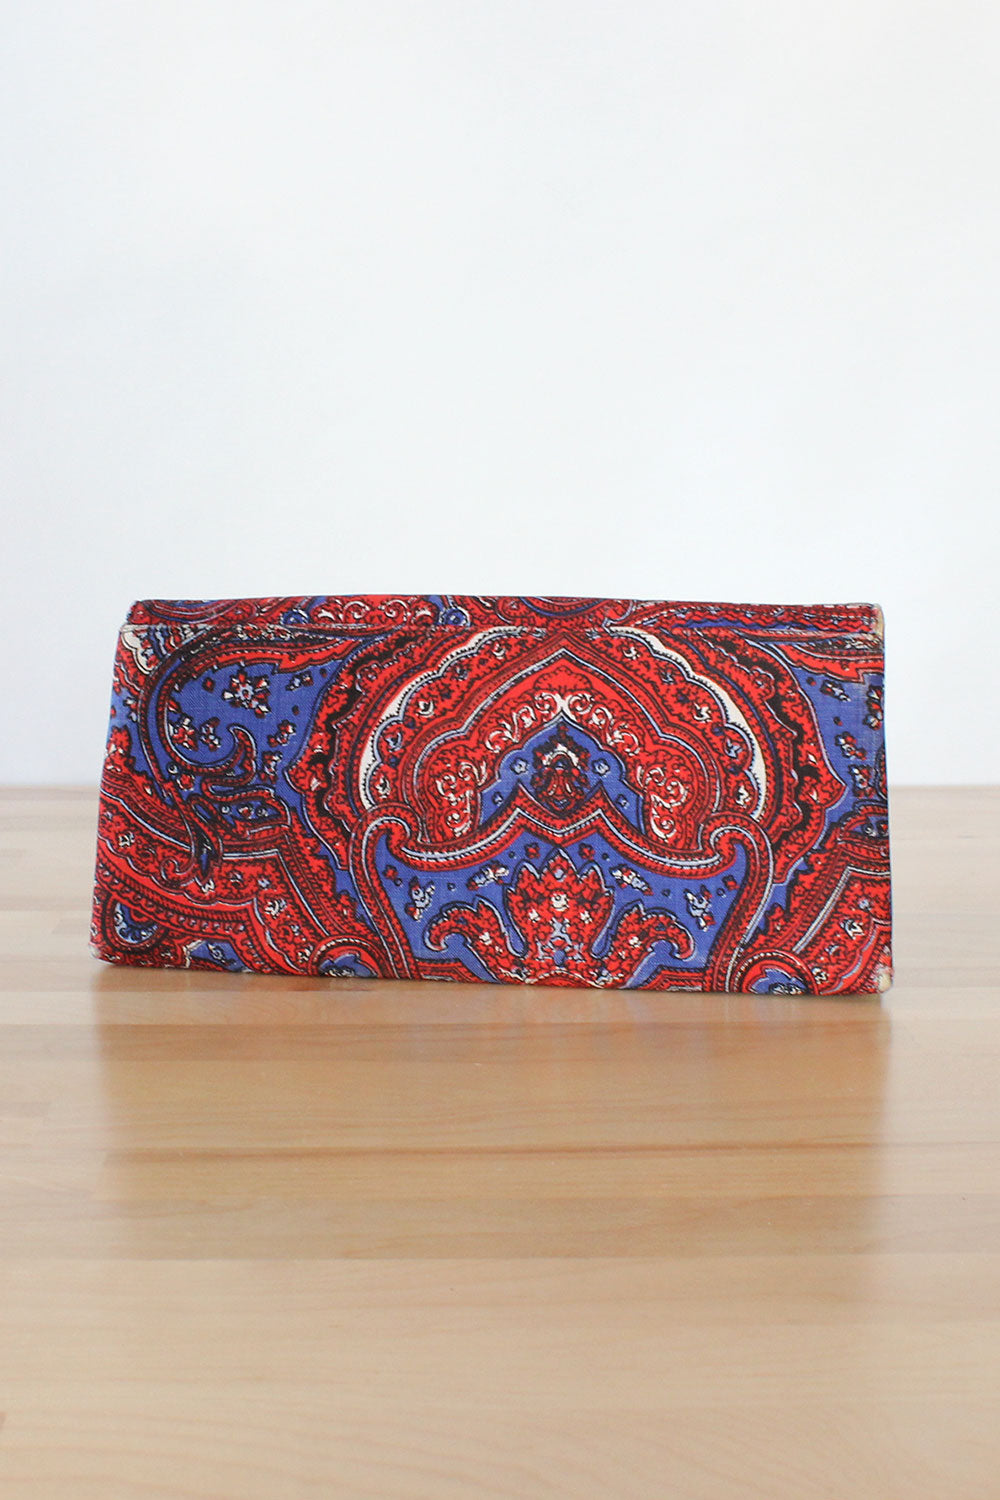 Primarily Paisley 1960s Clutch